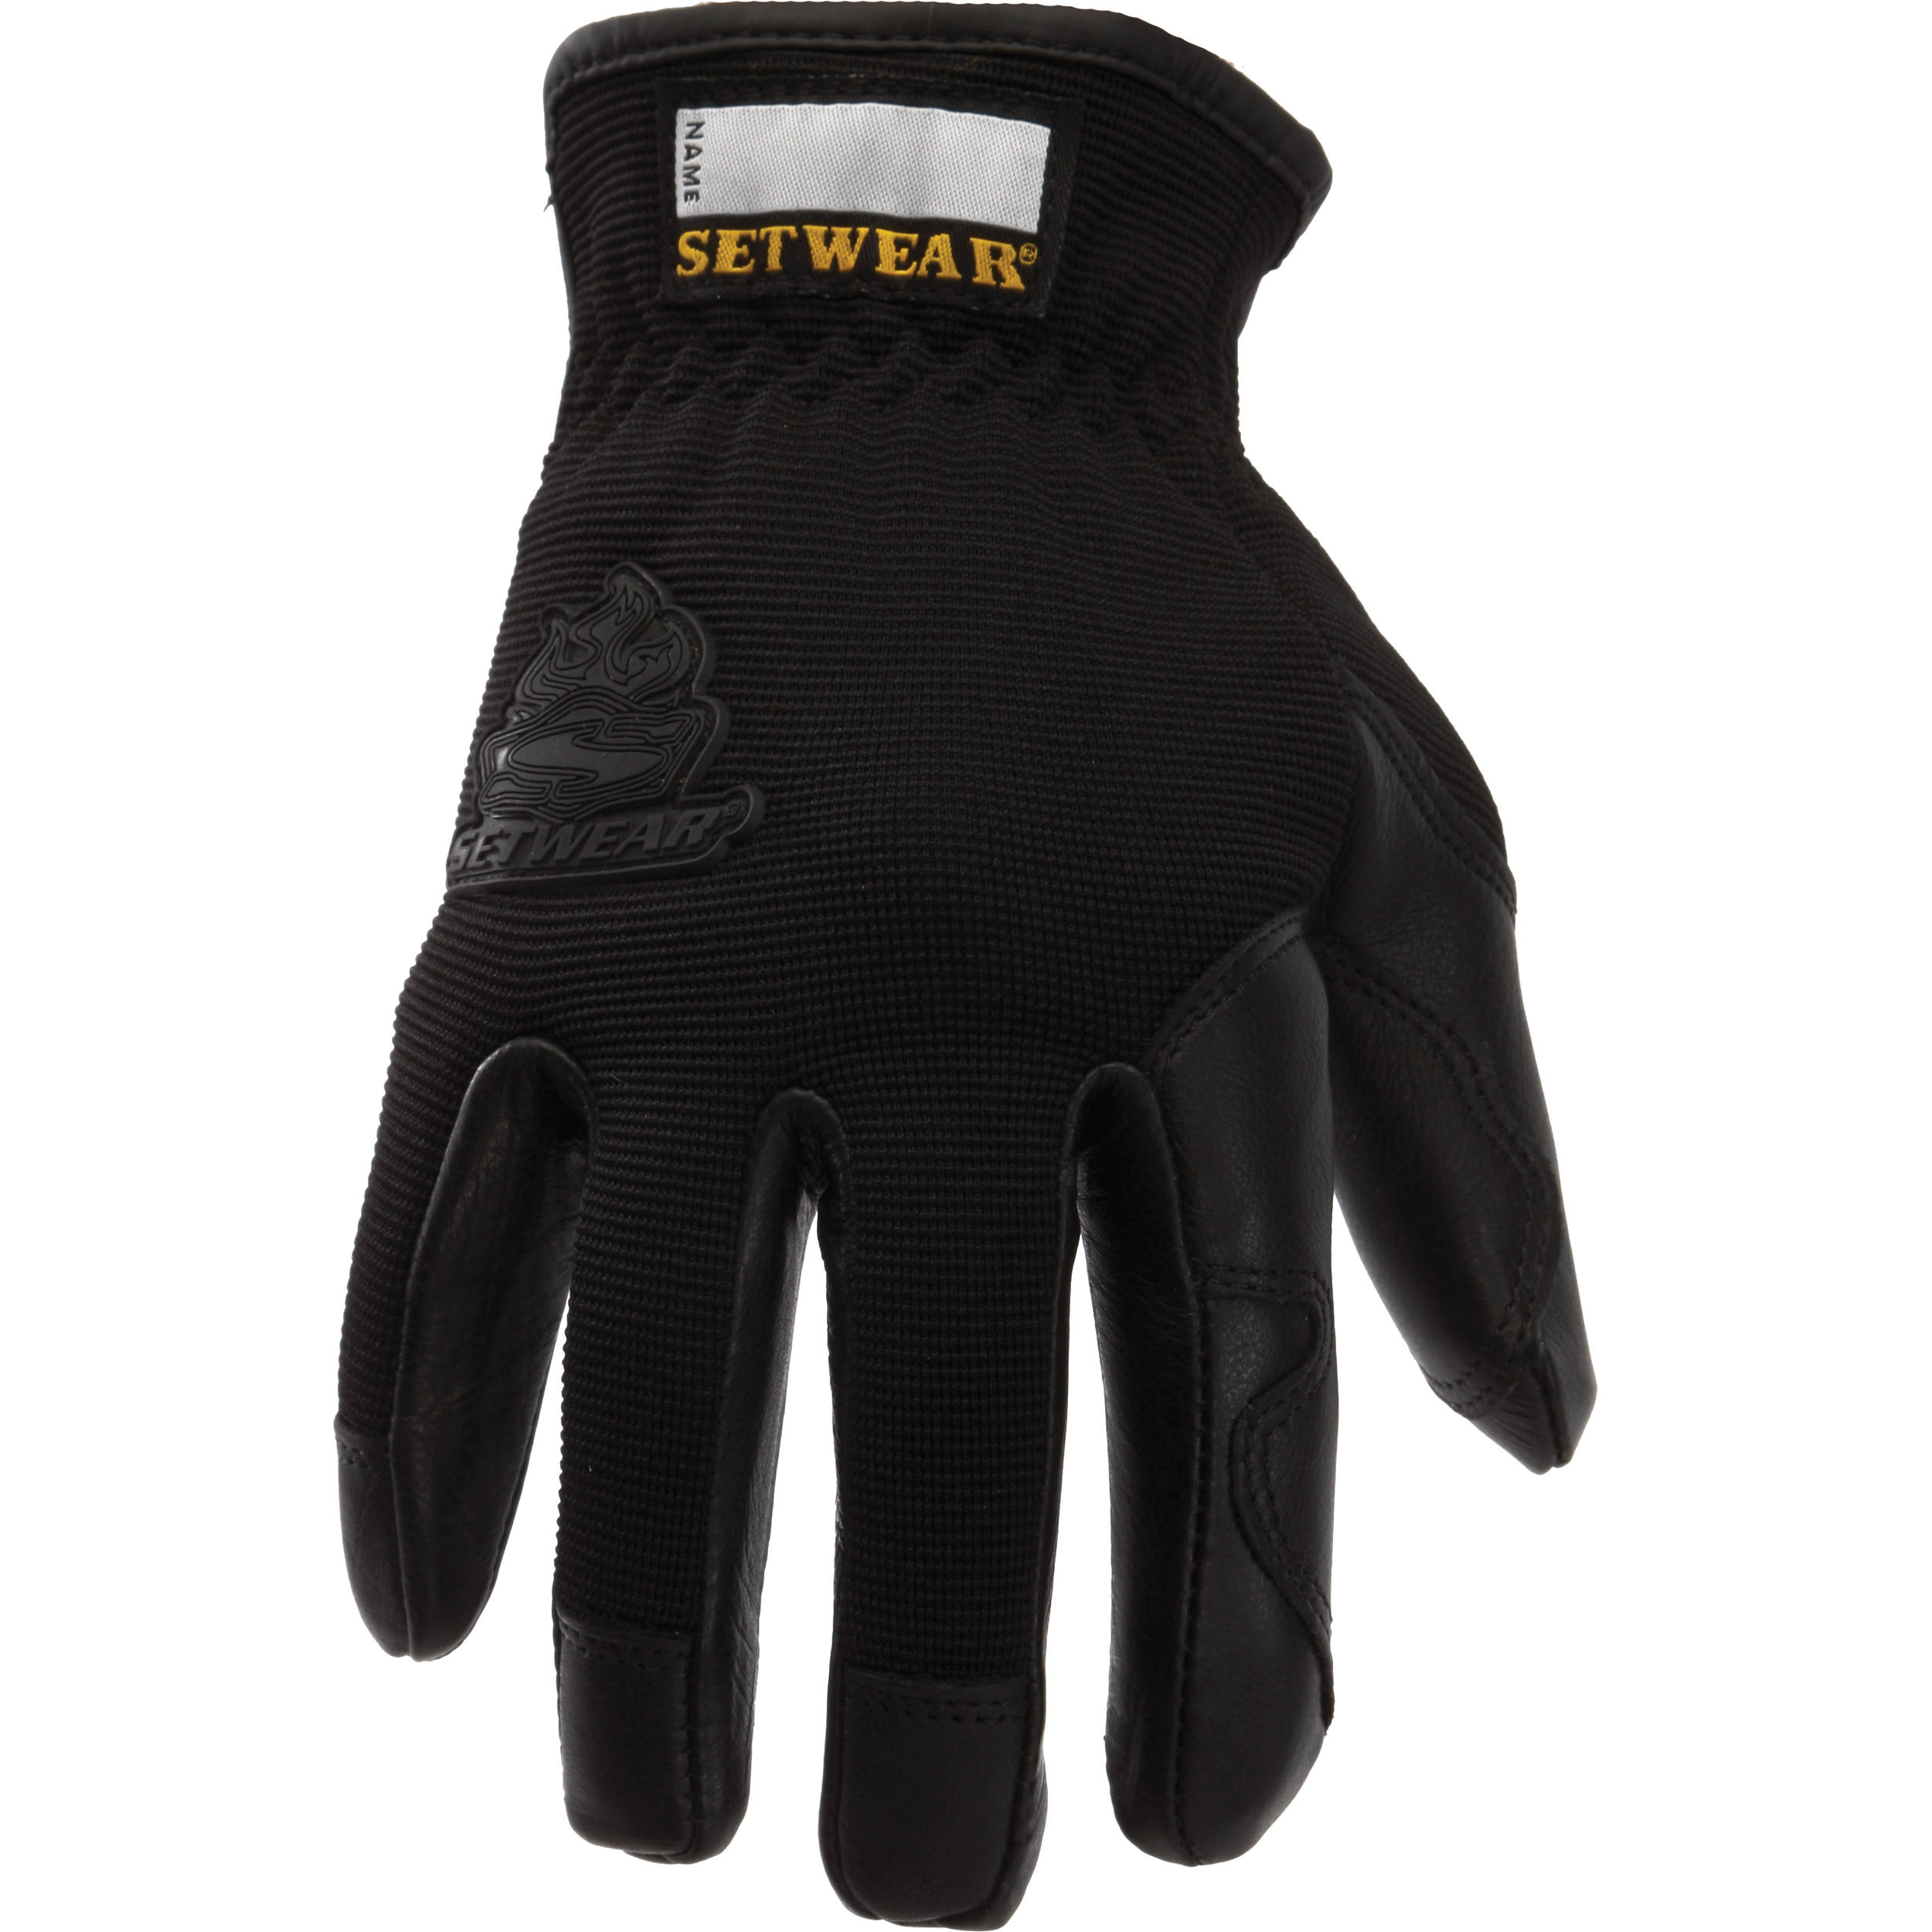 Black leather gloves small - Setwear Pro Leather Gloves X Small Black